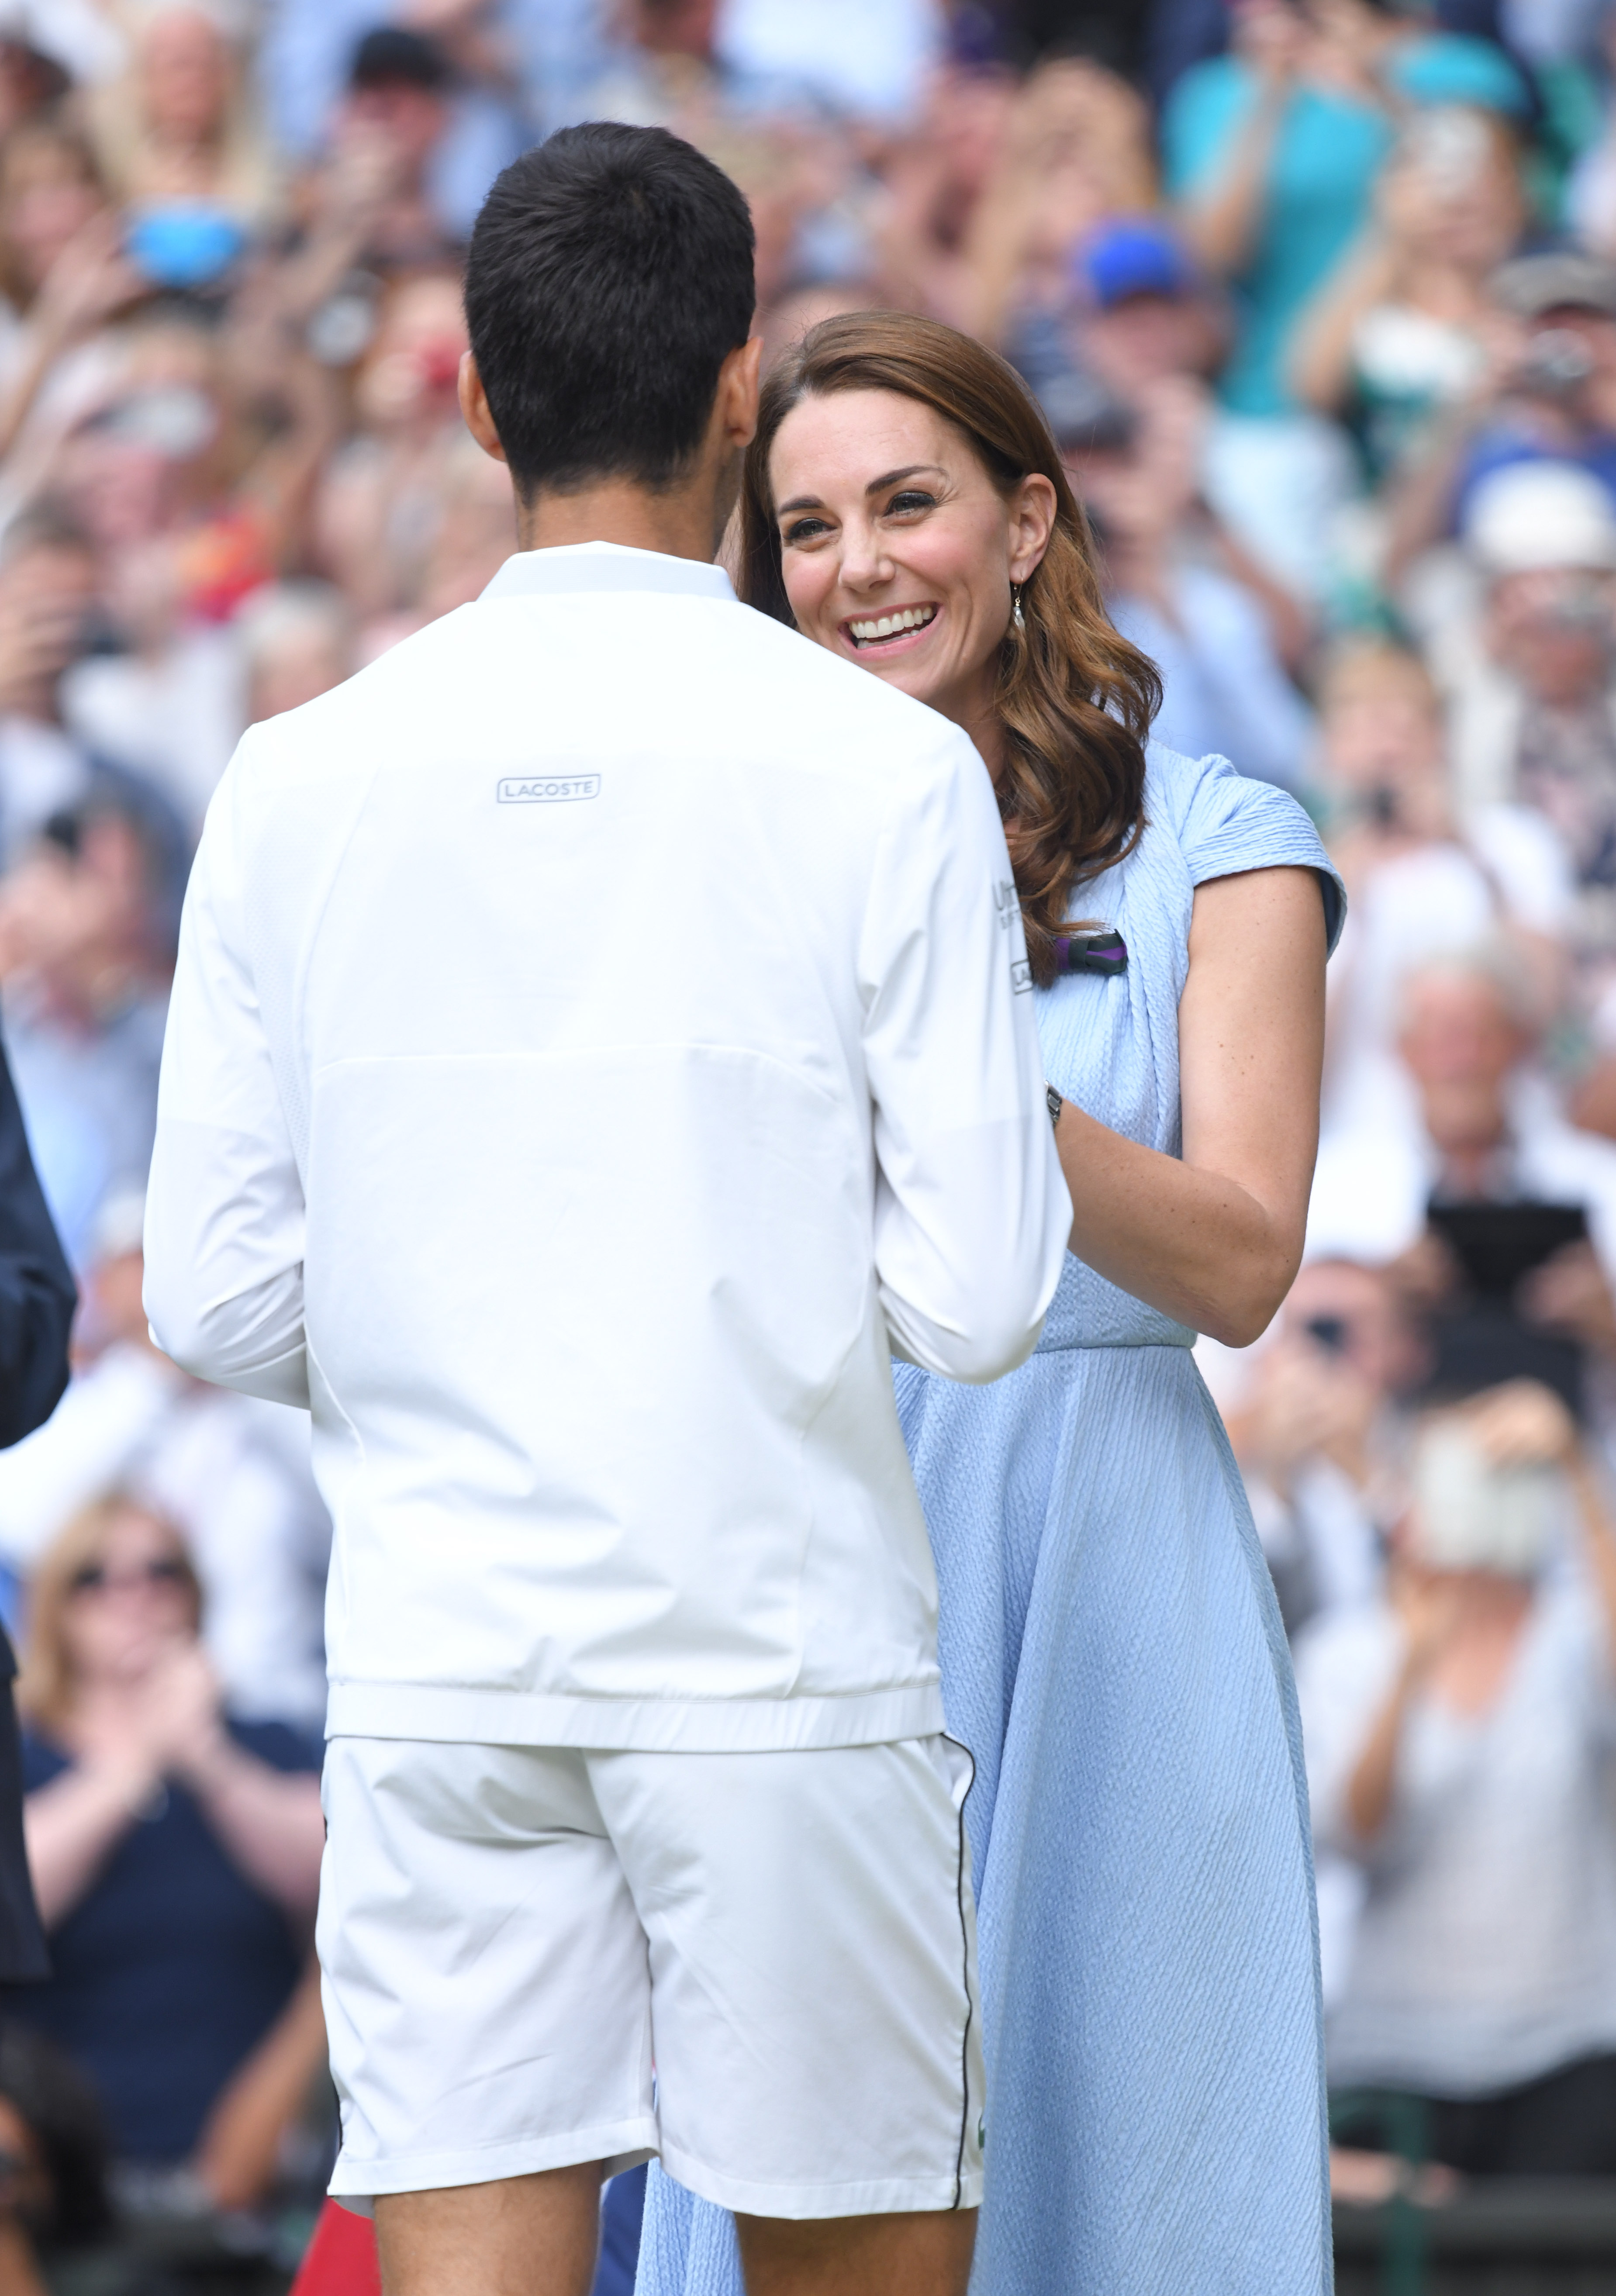 LONDON, ENGLAND - JULY 14: Catherine, Duchess of Cambridge presents Novak Djokovic with the winner's trophy after winning his Men's Singles final against Roger Federer of Switzerland during Day thirteen of the Wimbledon Tennis Championships at All England Lawn Tennis and Croquet Club on July 14, 2019 in London, England. (Photo by Karwai Tang/Getty Images)